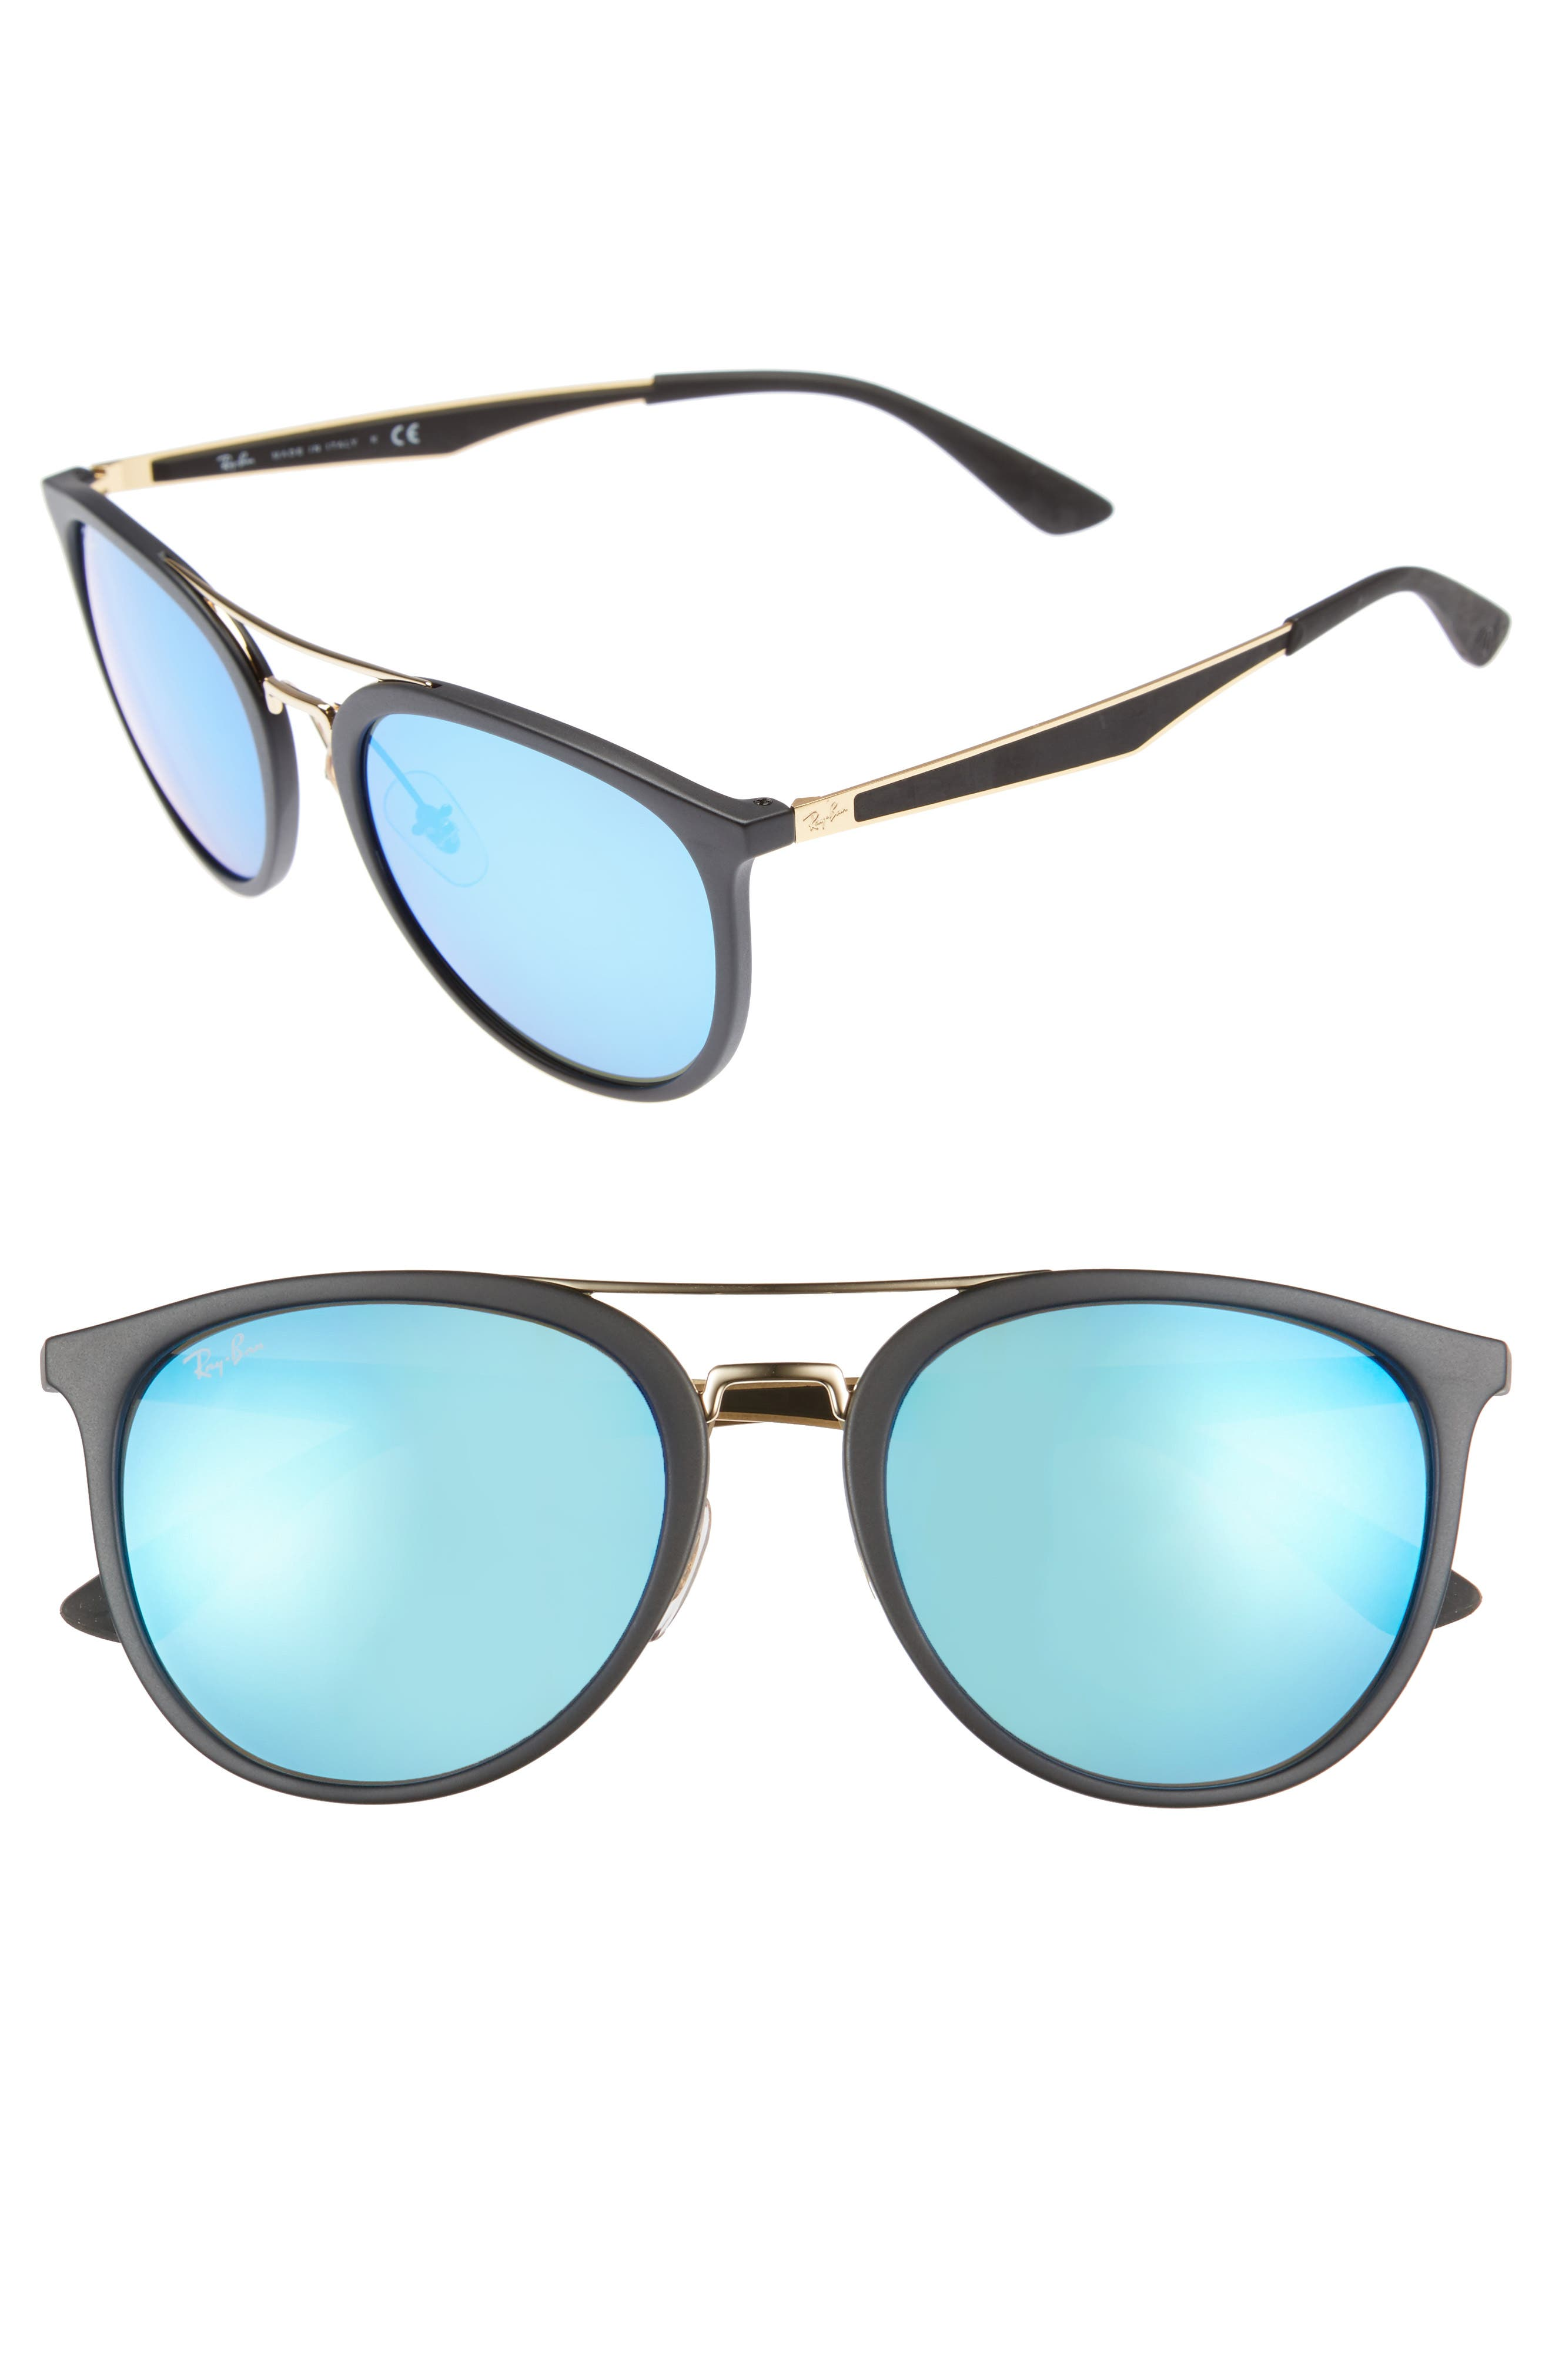 Alternate Image 1 Selected - Ray-Ban 55mm Retro Sunglasses